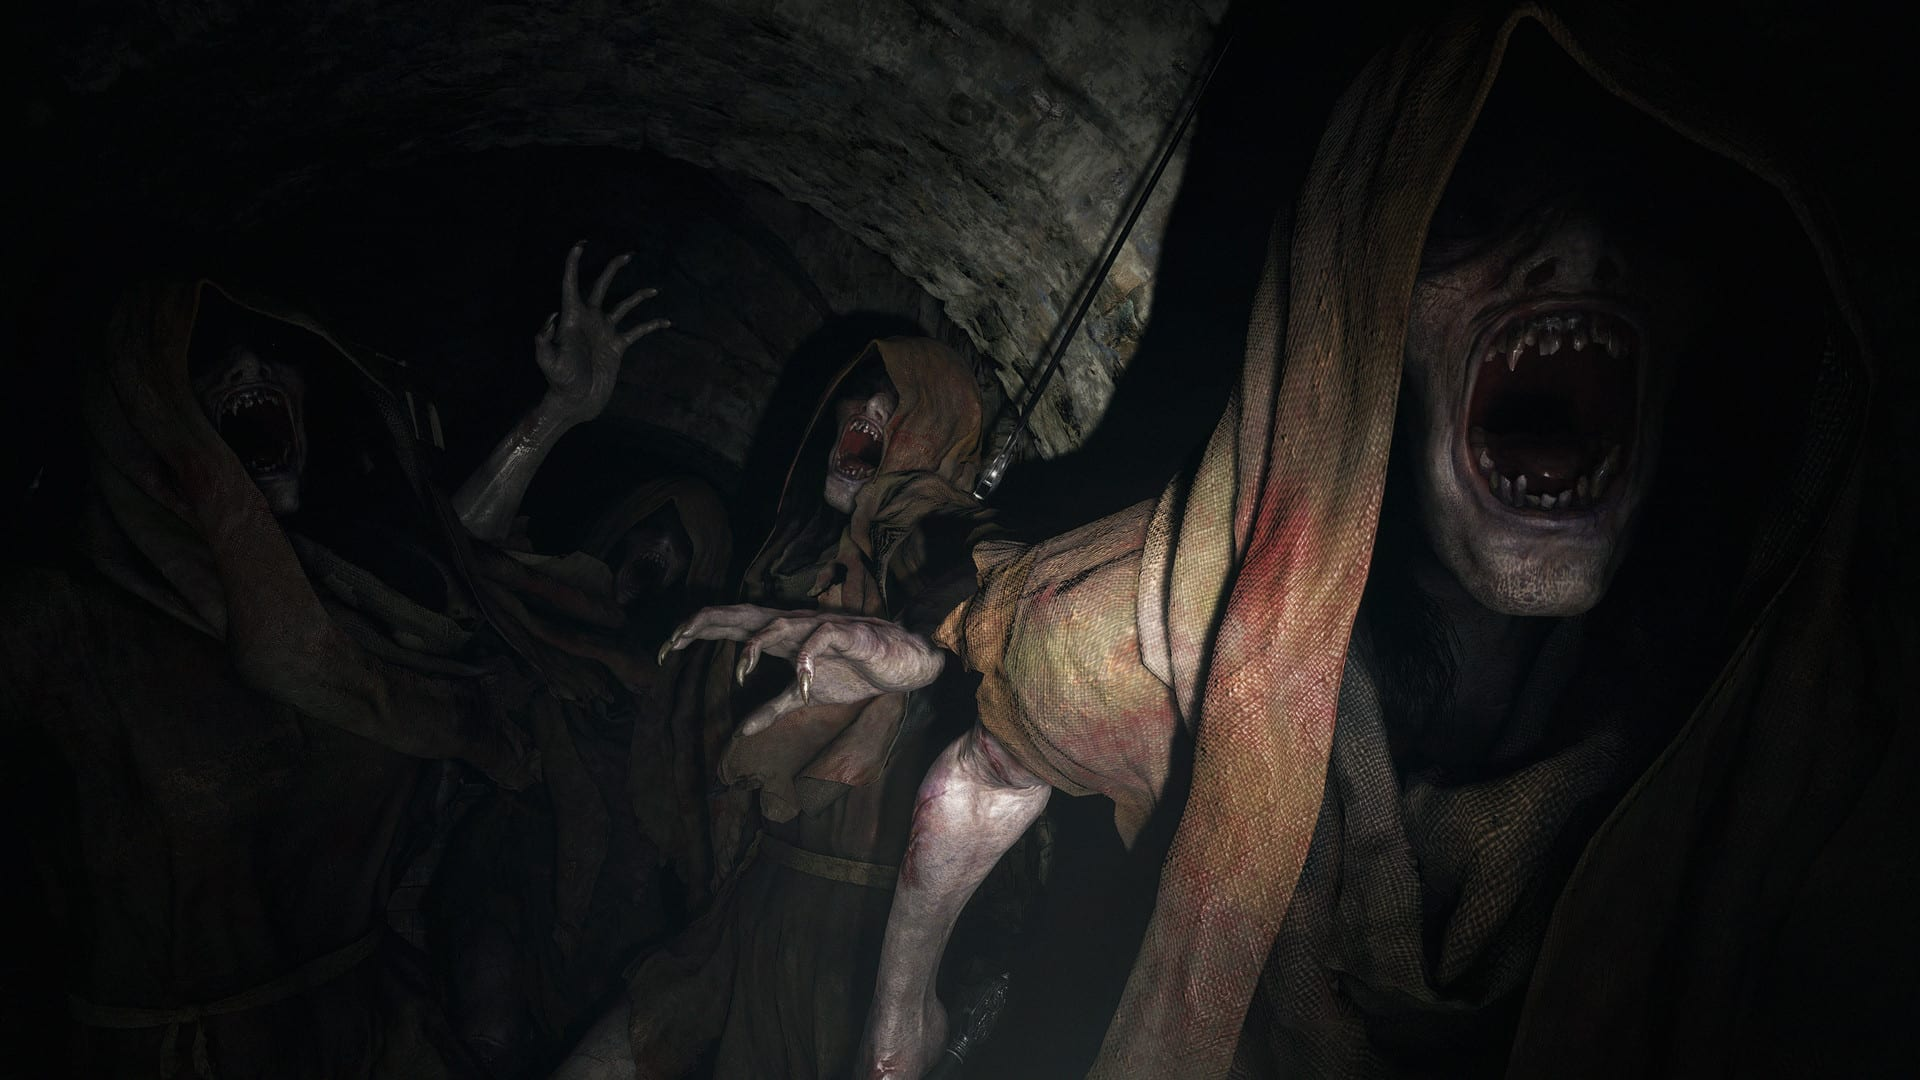 Resident Evil 8 review hands-on impressions Capcom perfect celebration of series history, including Resident Evil 4